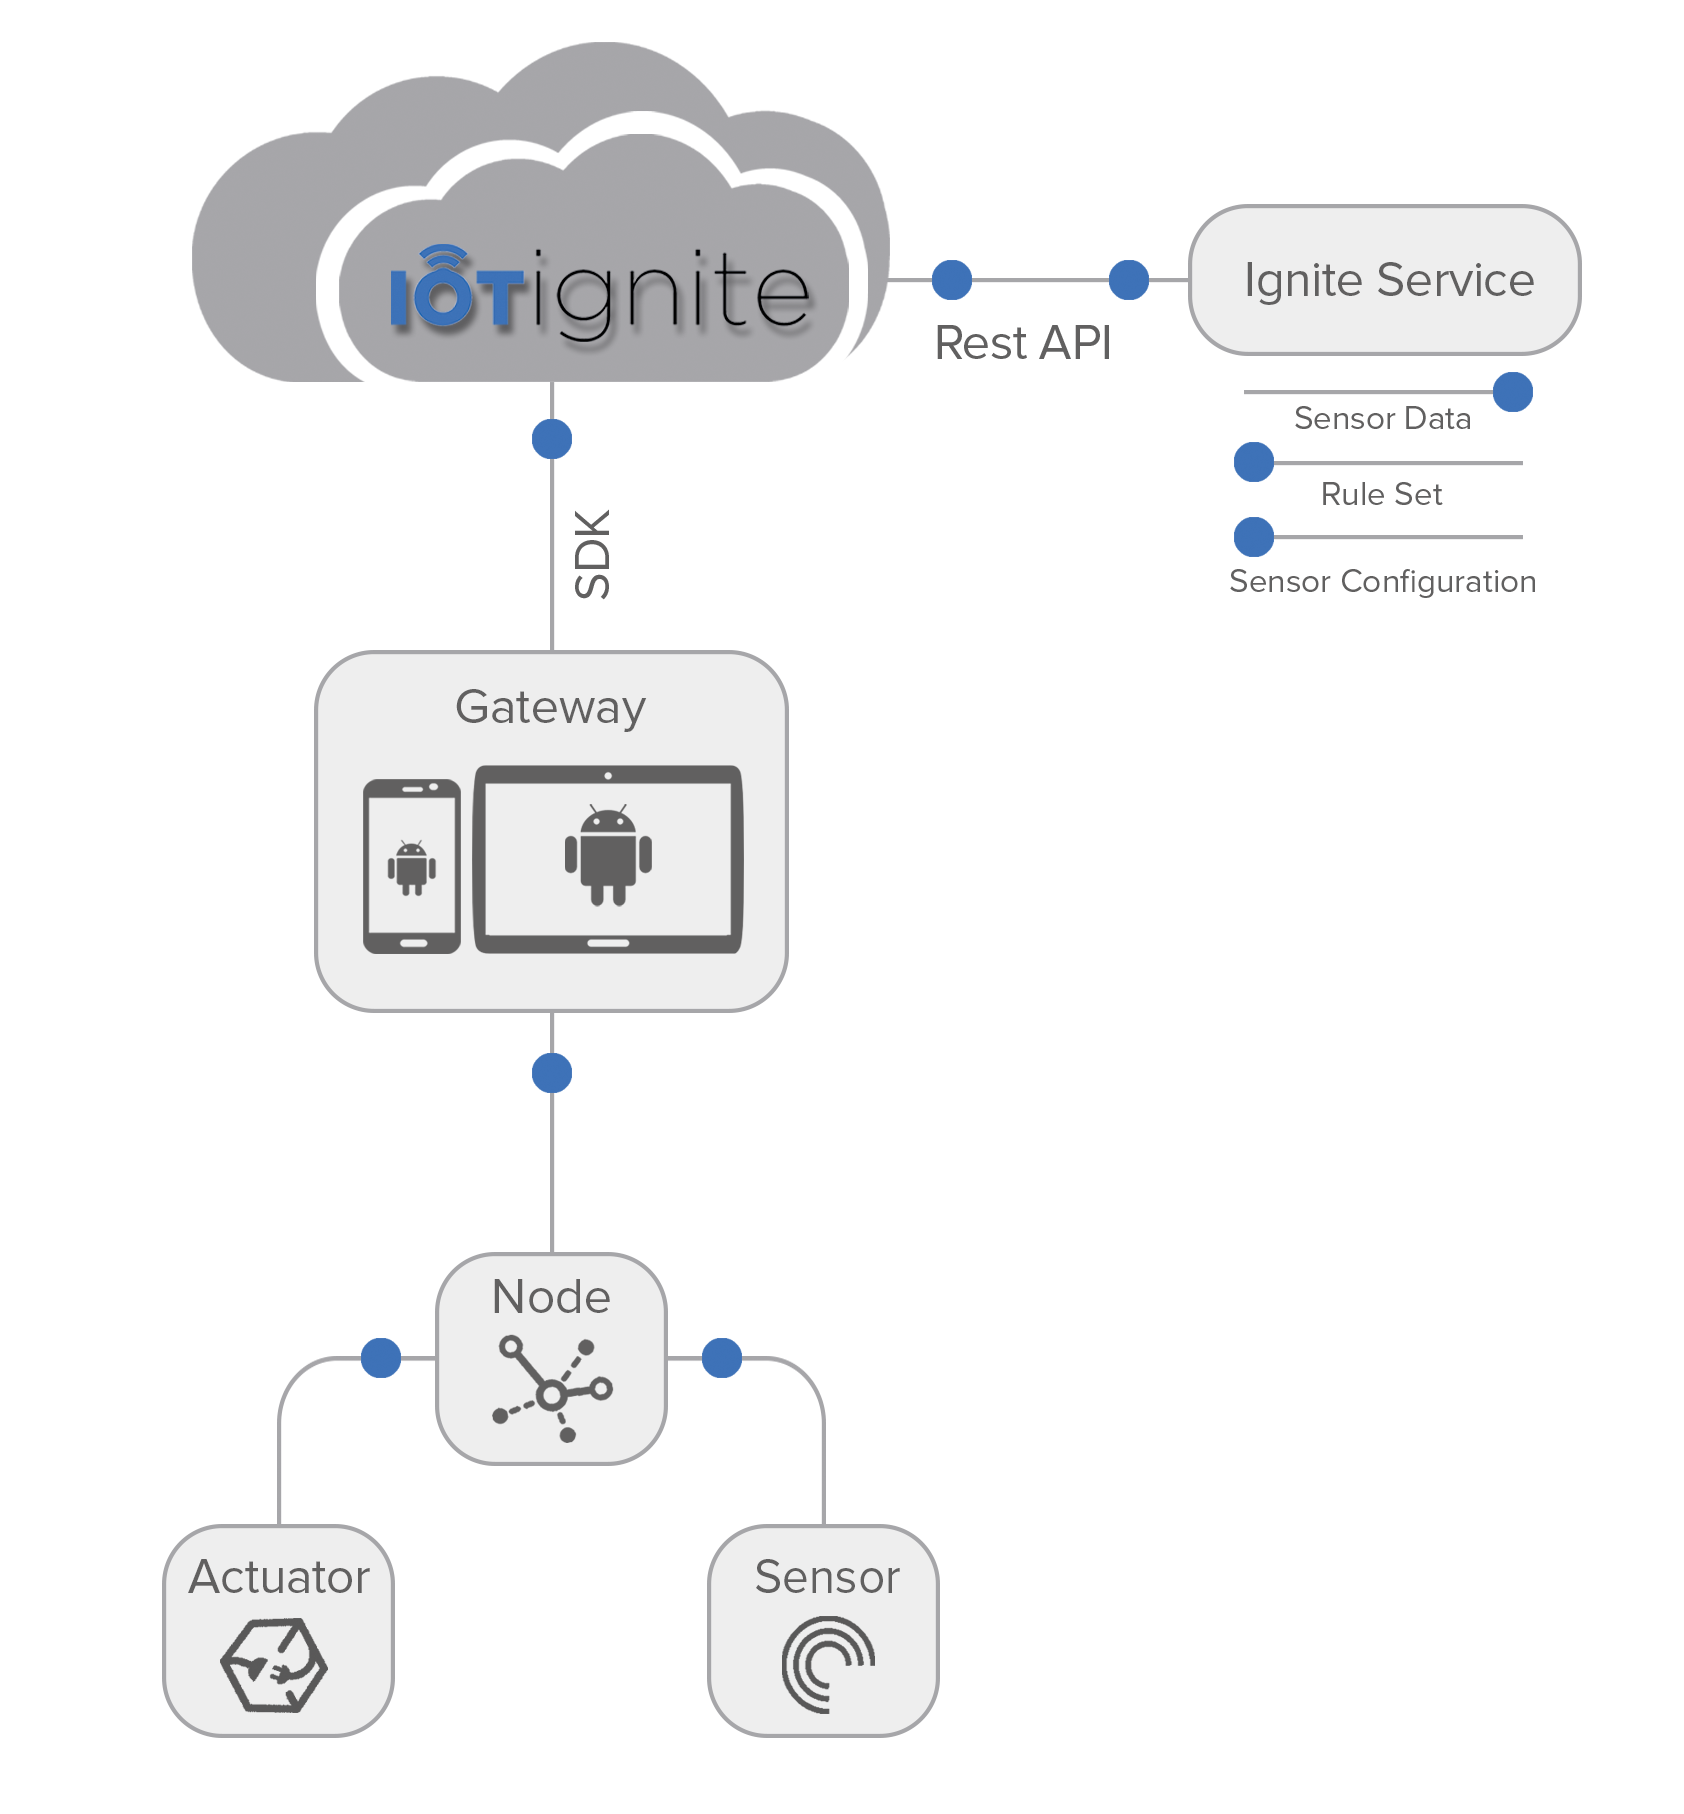 Android As an IoT Gateway - IoT-Ignite Devzone